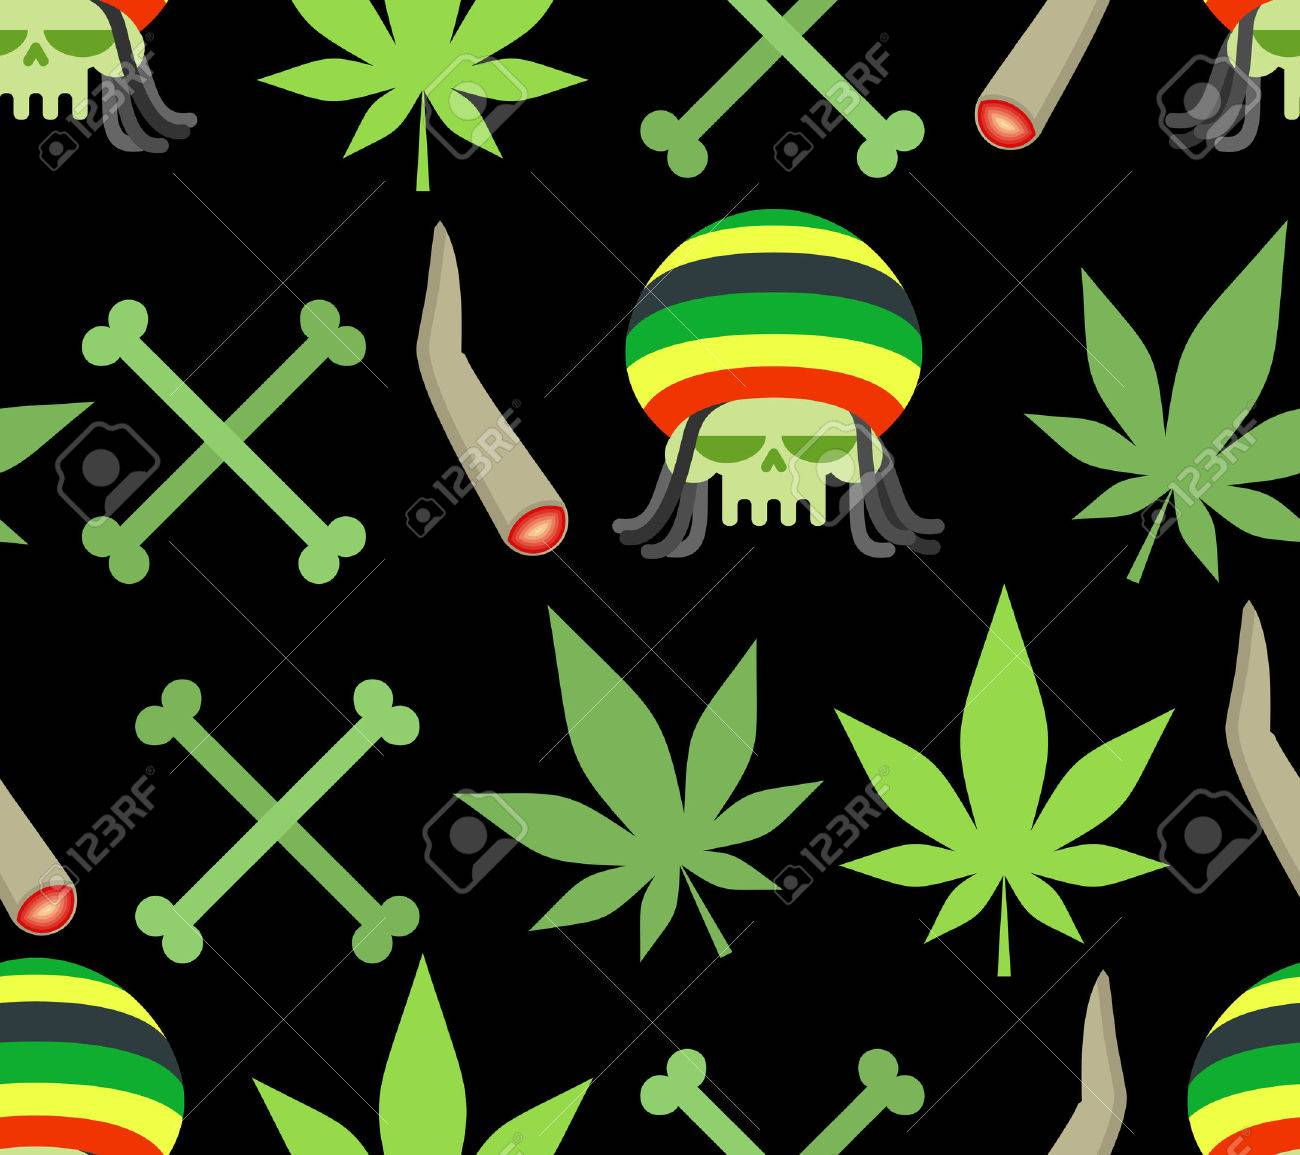 44333496-jamaica-drugs-seamless-pattern-rasta-skull-and-leaf-cannabis-spliff-and-bones-smoking-pushing-drugs-Stock-Vector.jpg